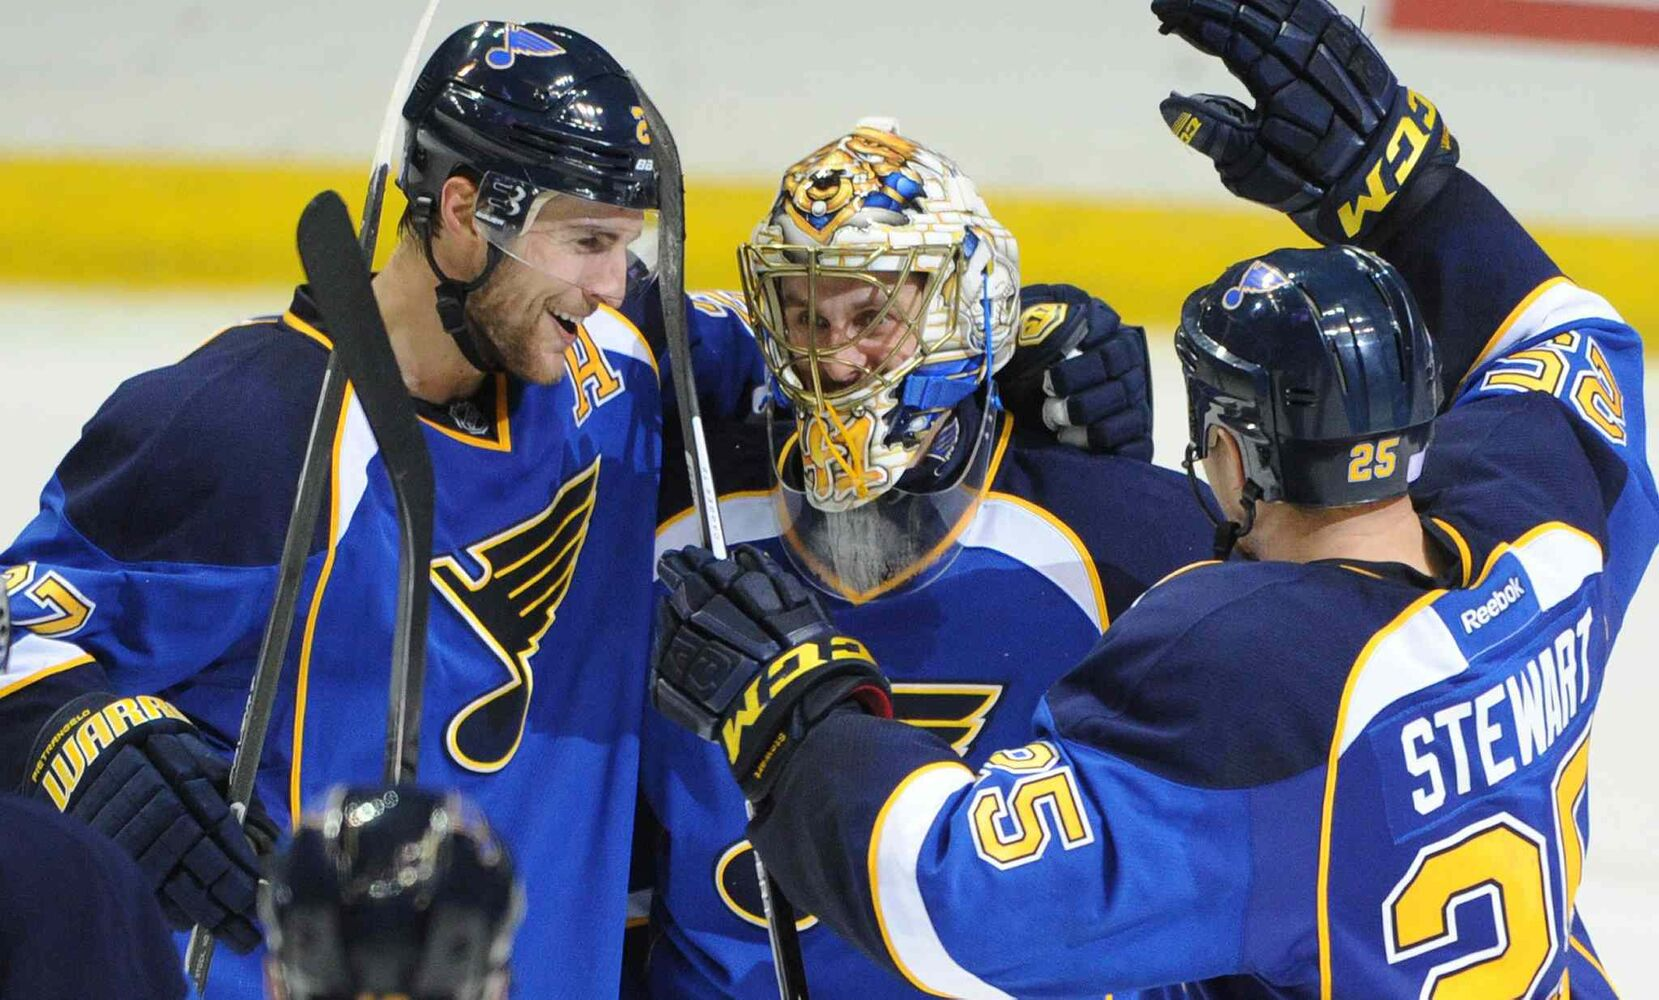 St. Louis Blues goalie Jaroslav Halak is congratulated by teammates Alex Pietrangelo (left) and Chris Stewart after the Blues' 3-2 victory over the Winnipeg Jets. (Bill Boyce / the associated press)